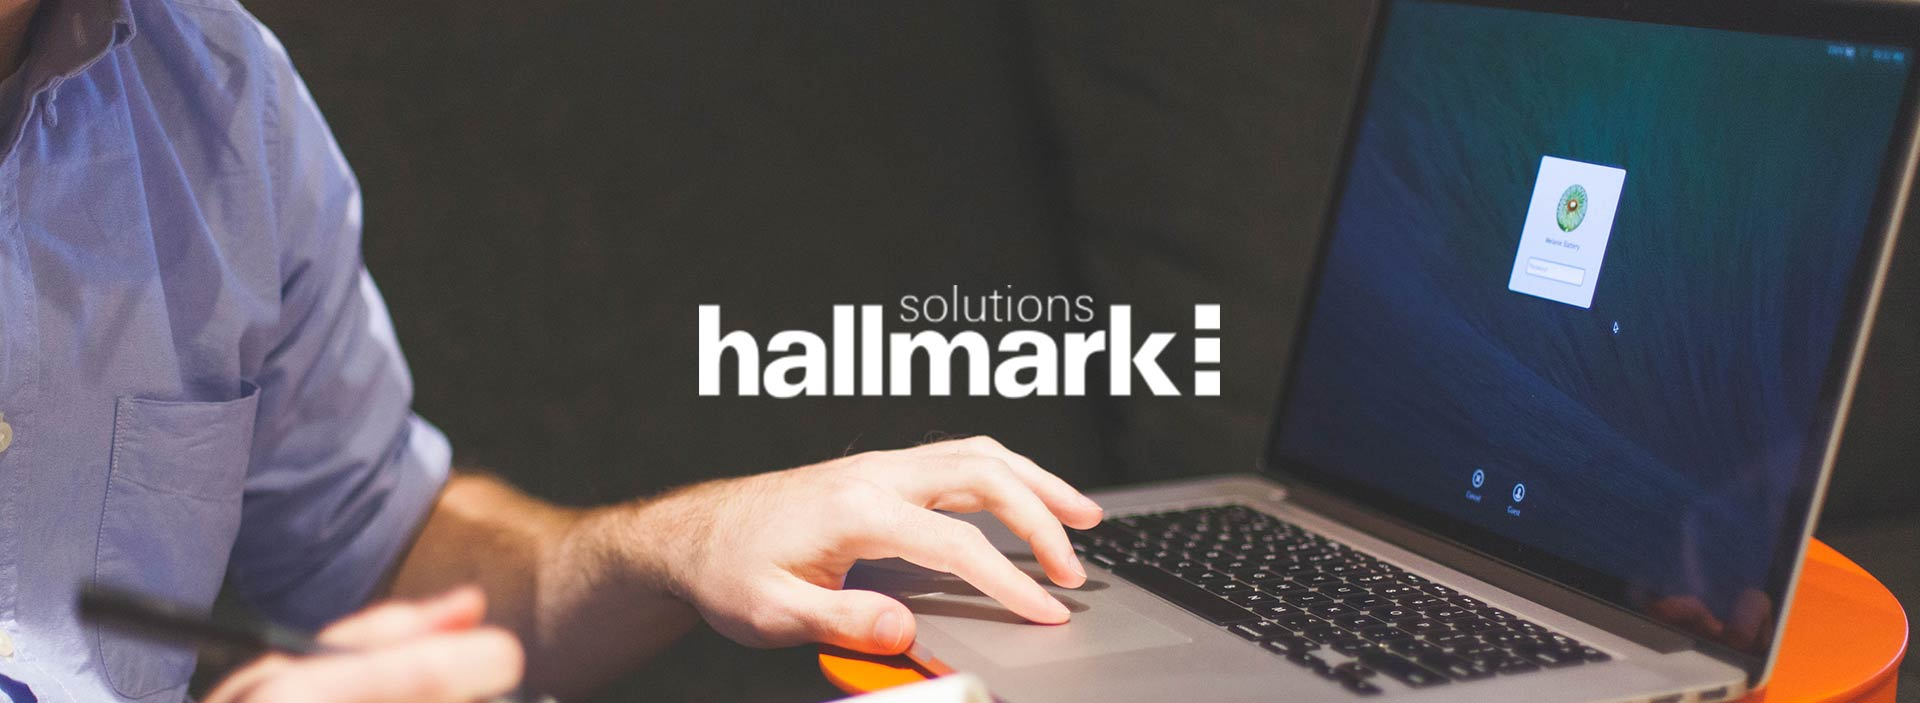 New Brand Design Client: Hallmark Solutions HR Software main image